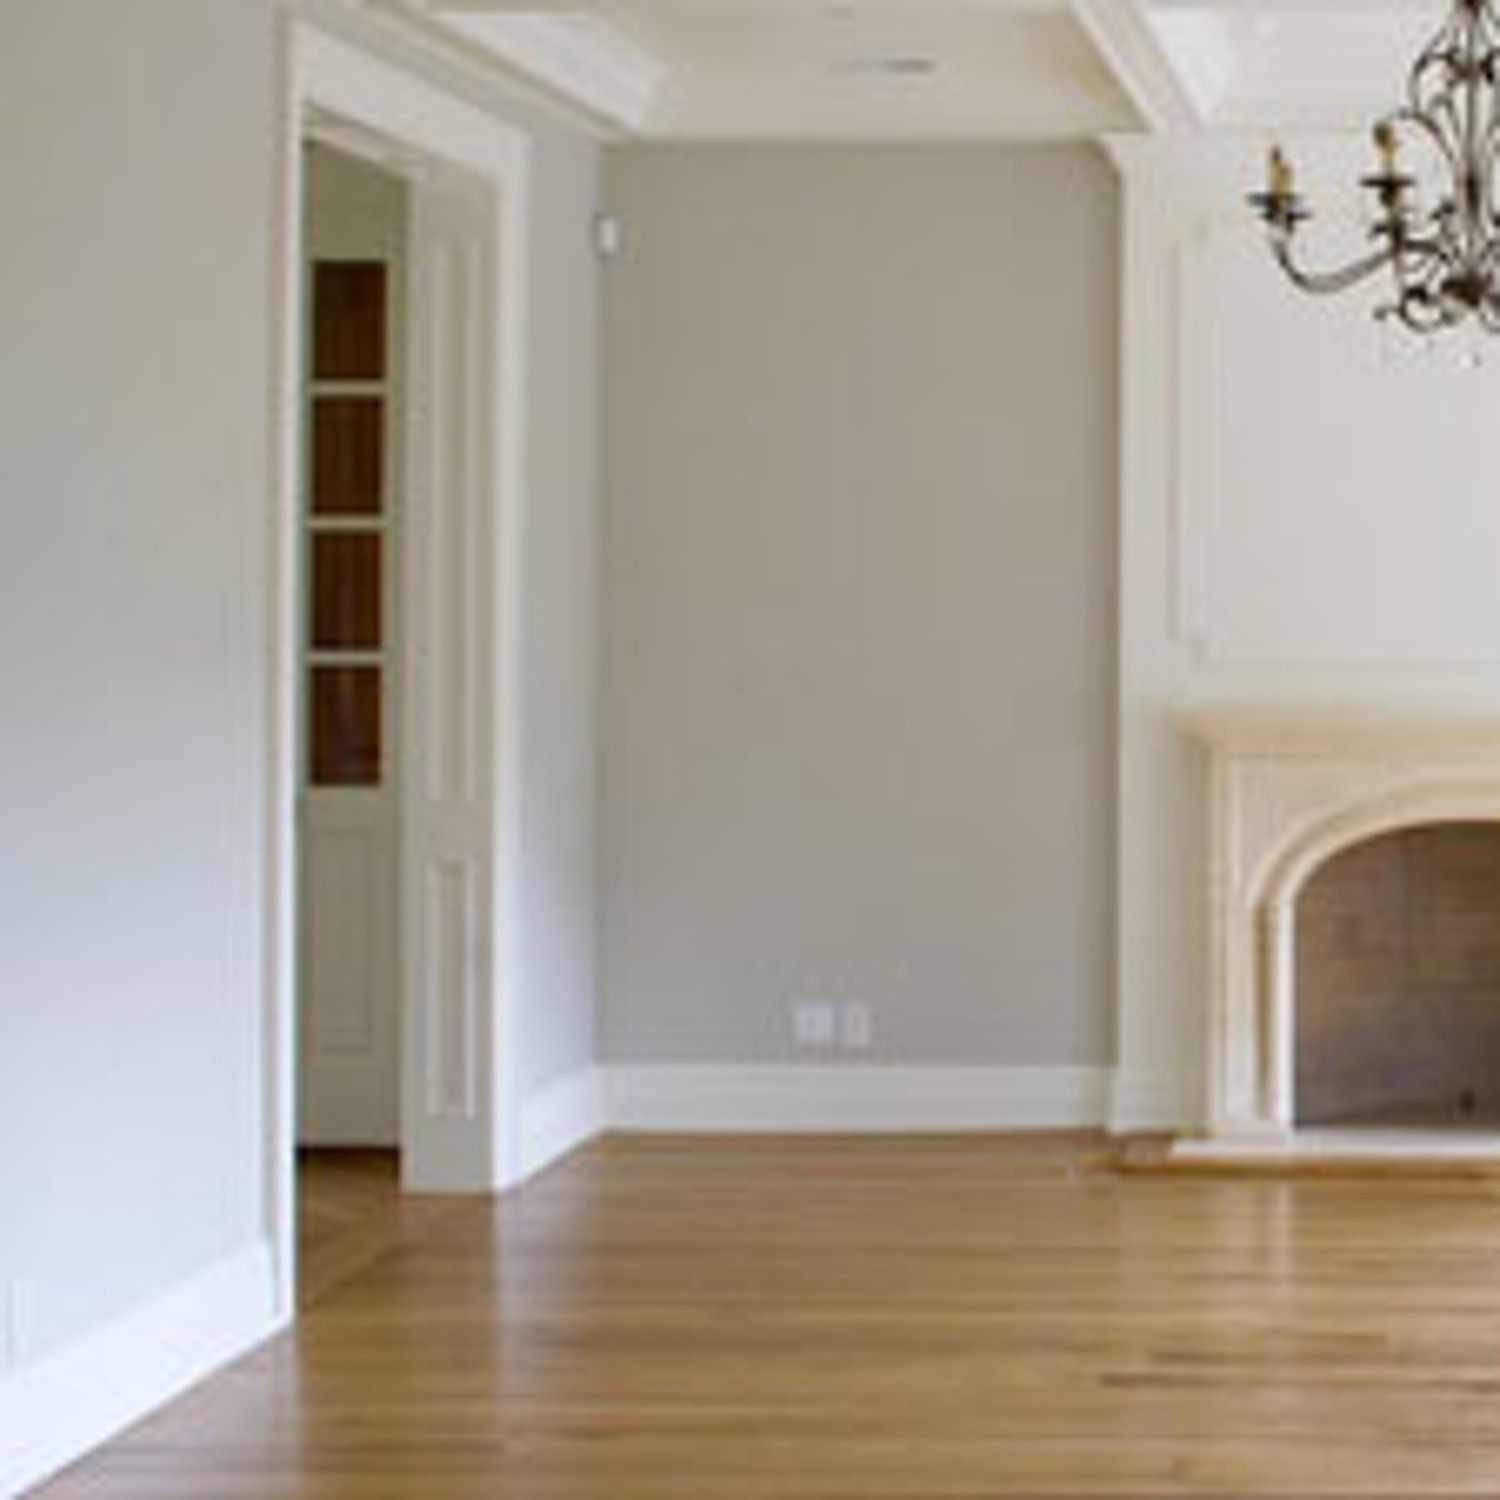 What Color Wood Floor With Gray Walls: Warm Oak Floors With Cool Gray Walls?